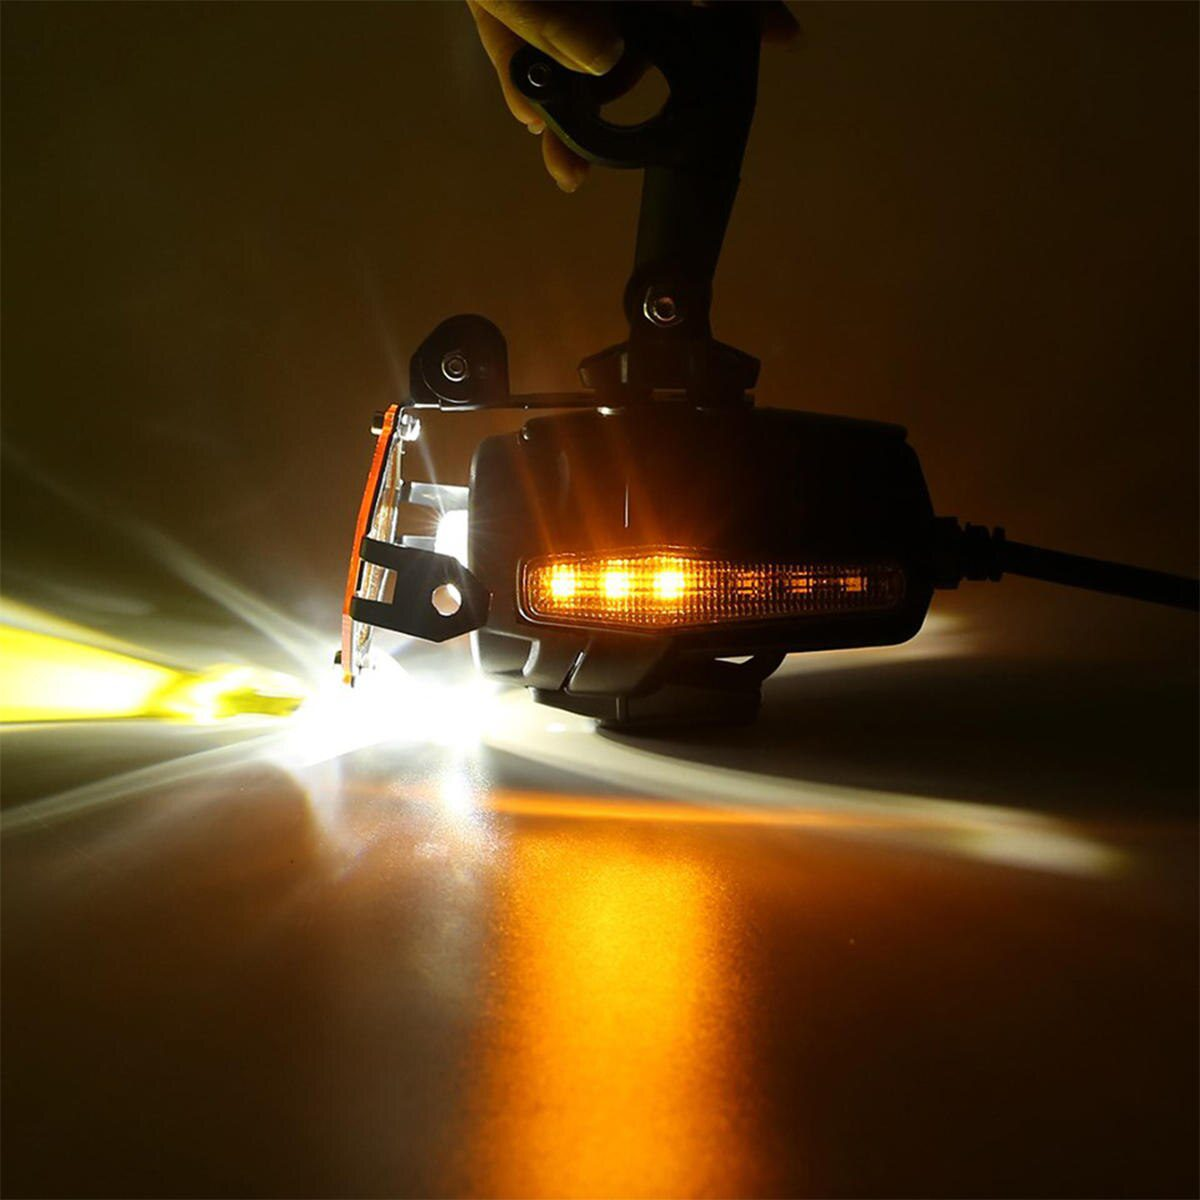 Replacement LED Motorcycle Auxiliary Fog Light Assemblie Driving Lamp With DRL Turn Signal Light Brackets for R1200GS/ADV/F800GS